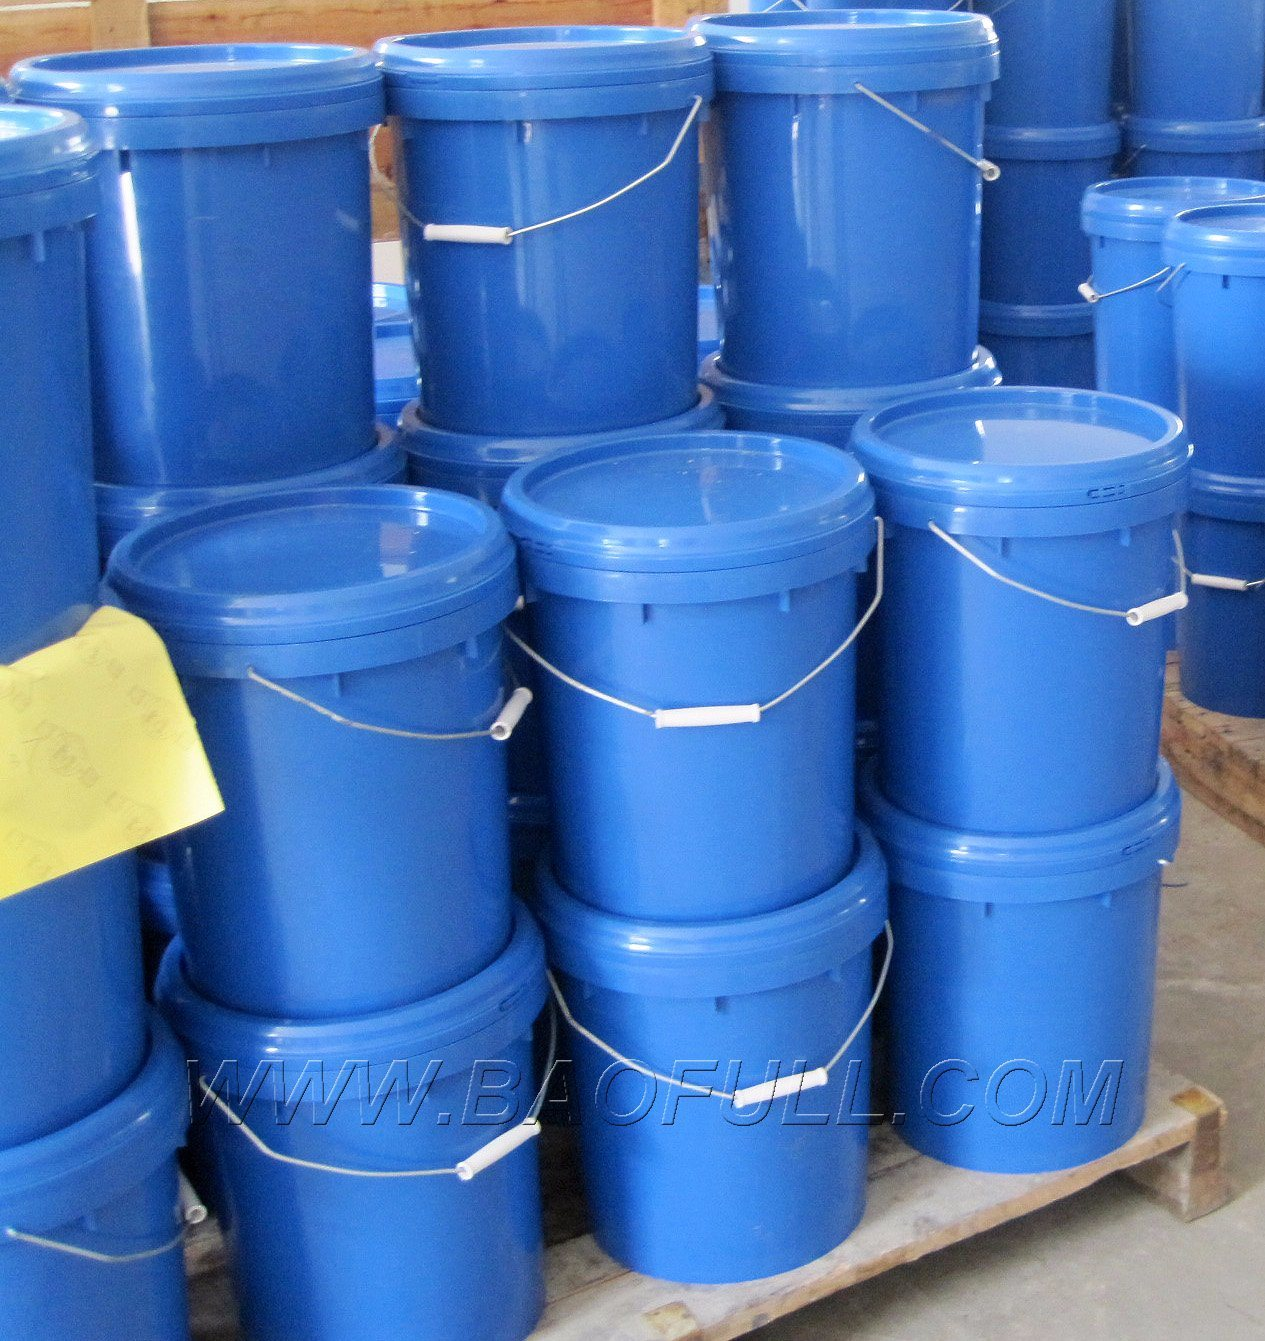 Tinc Chloride Stannous Chloride for Tin Plating